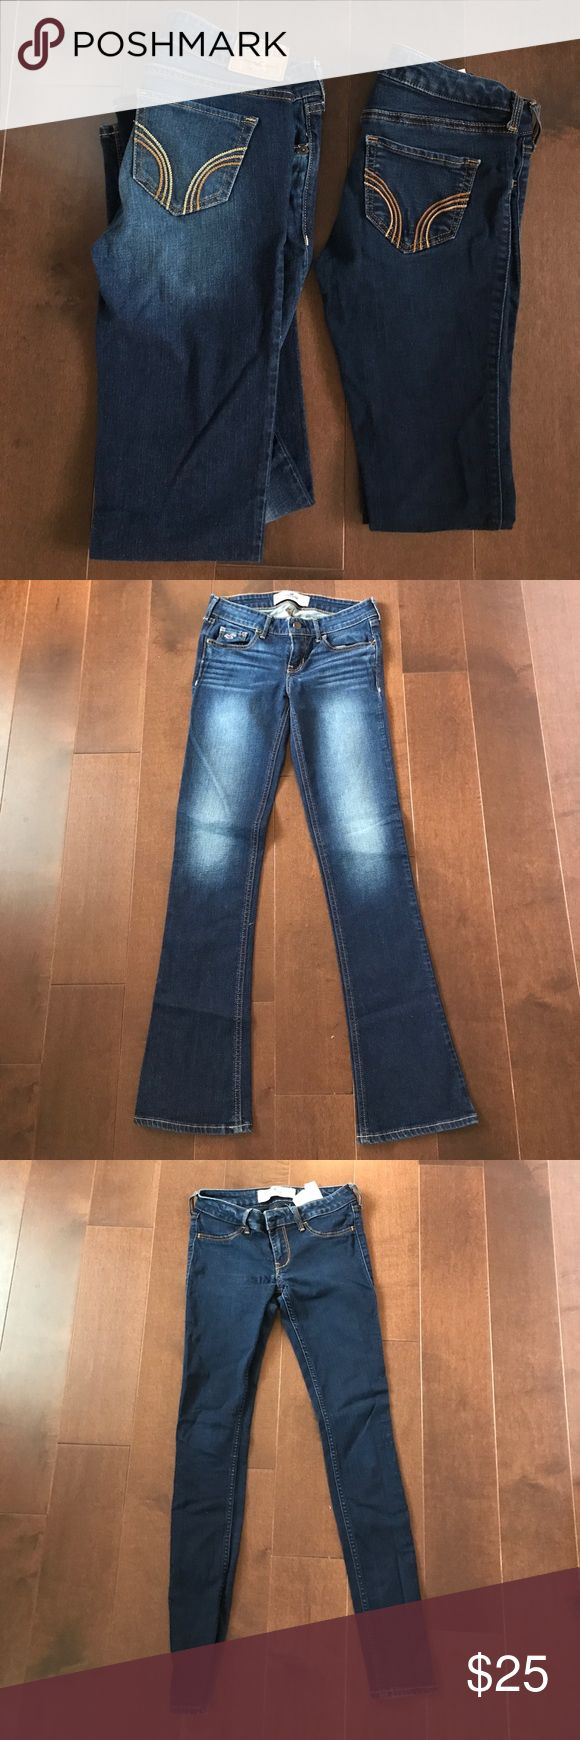 Hollister Jean (bundle) Selling both pairs for price listed below or let me know if you would like to purchase any individually. One dark wash boot cut size 1 SHORT (w 25 l 31) and one dark wash skinny jean size 1 REGULAR (w 25 l 29) Both are in perfect condition :) Hollister Jeans